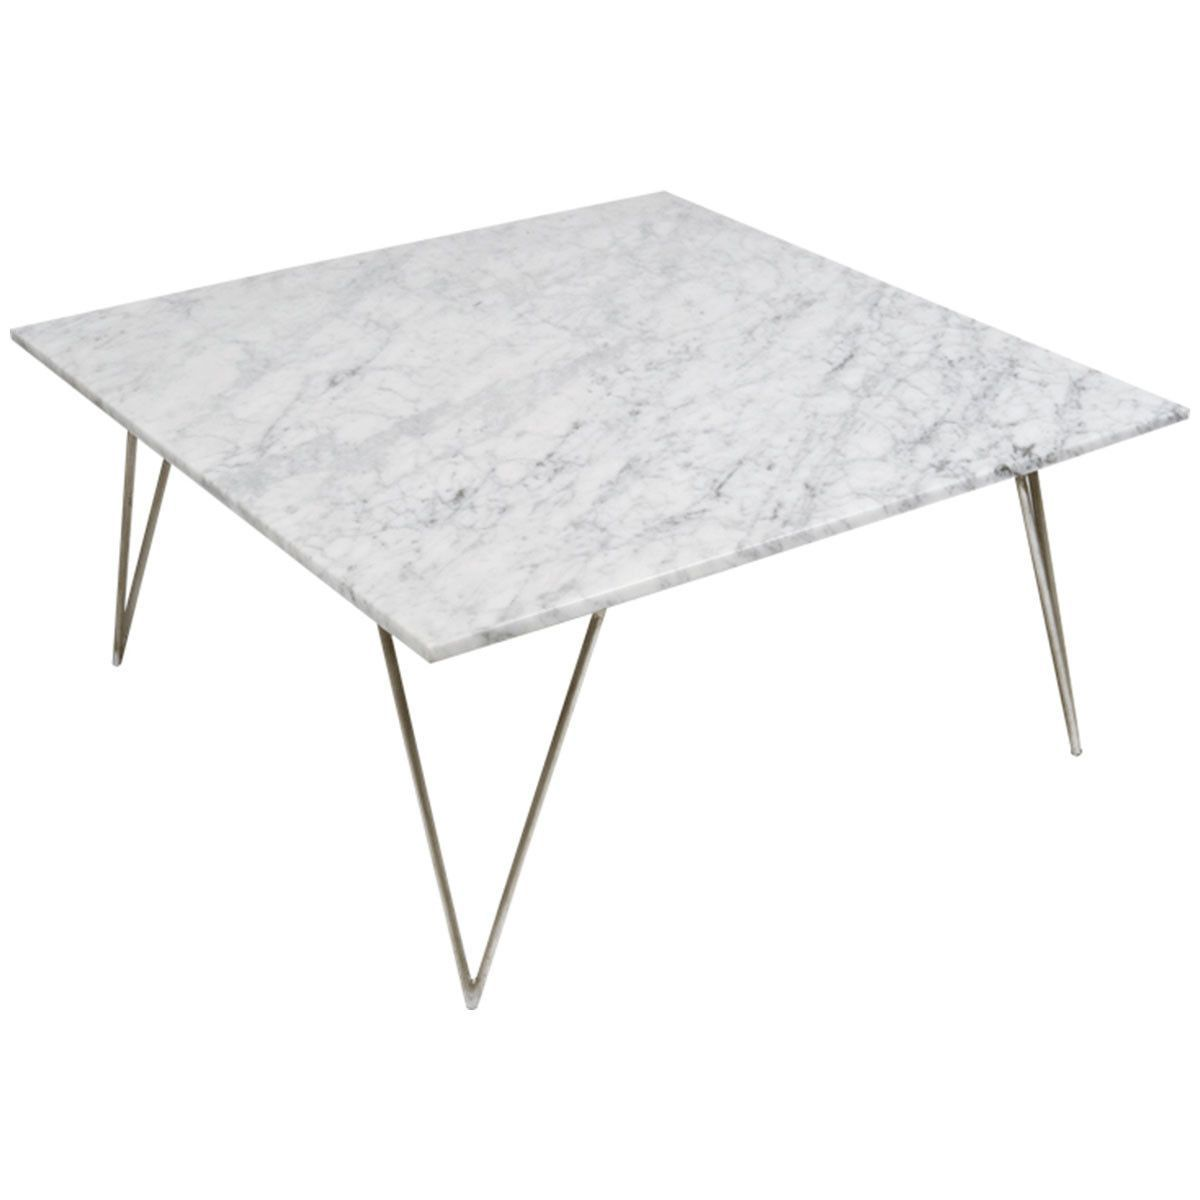 Worlds Away Hairpin Leg Coffee Table With Marble Top Neal Gb Coffee Table Gold Coffee Table Coffee Table Square